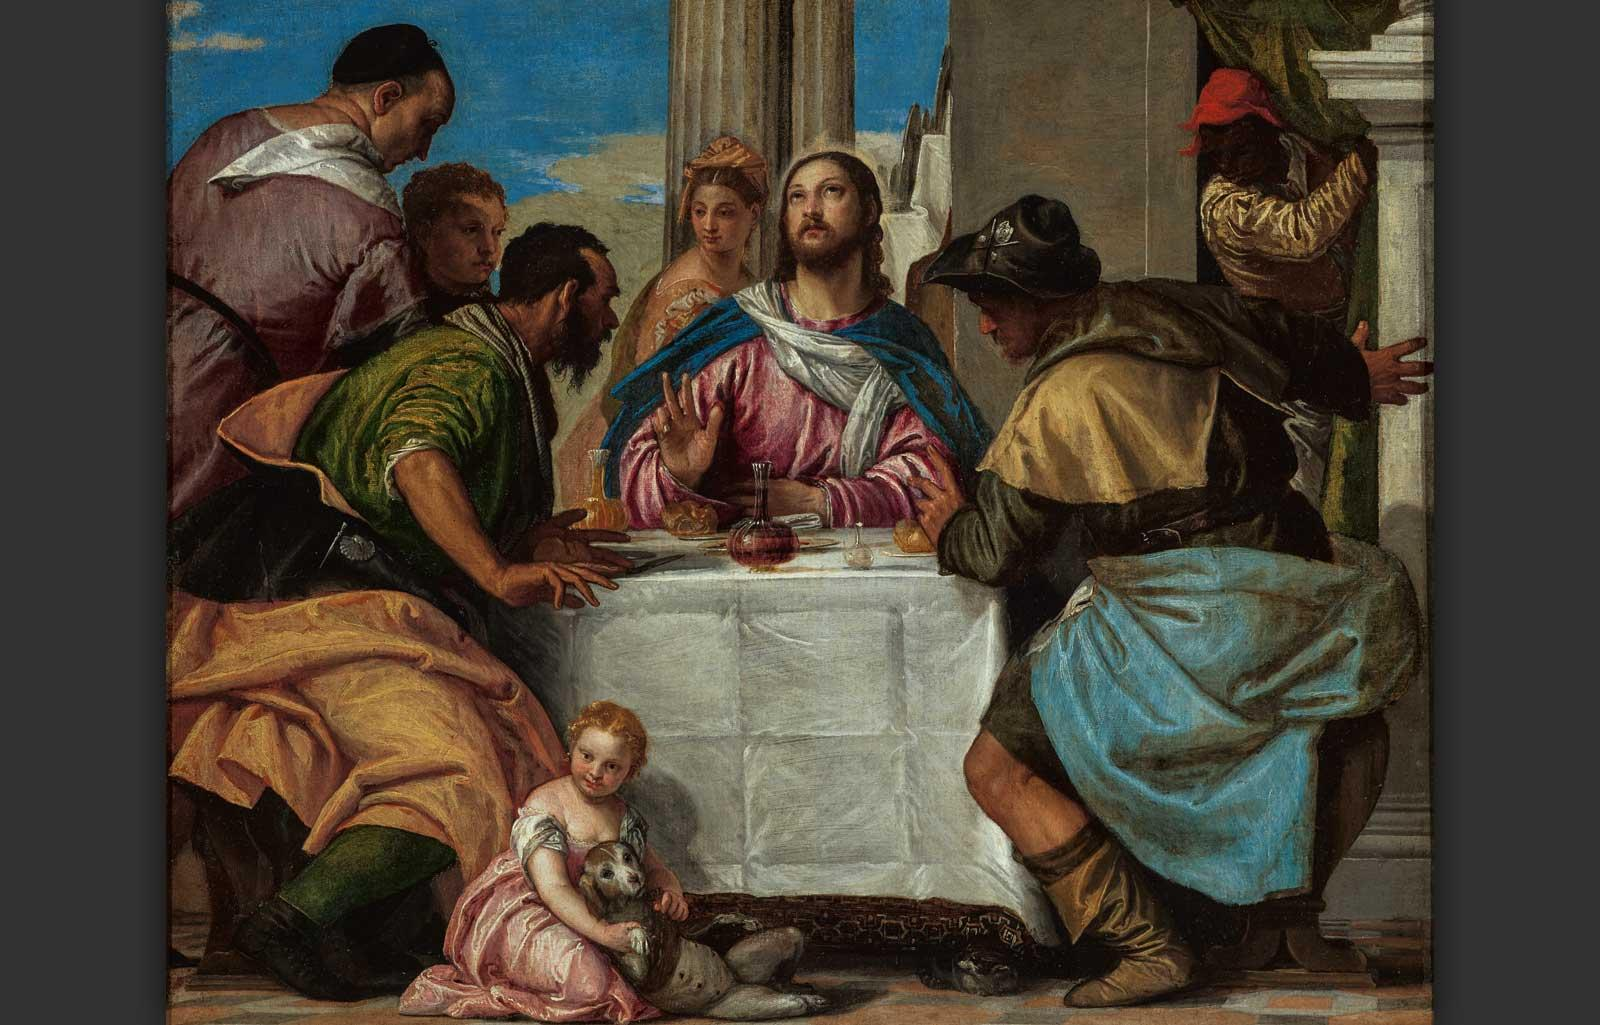 Supper at Emmaus, mid 1570s. Paolo Caliari, called Veronese.